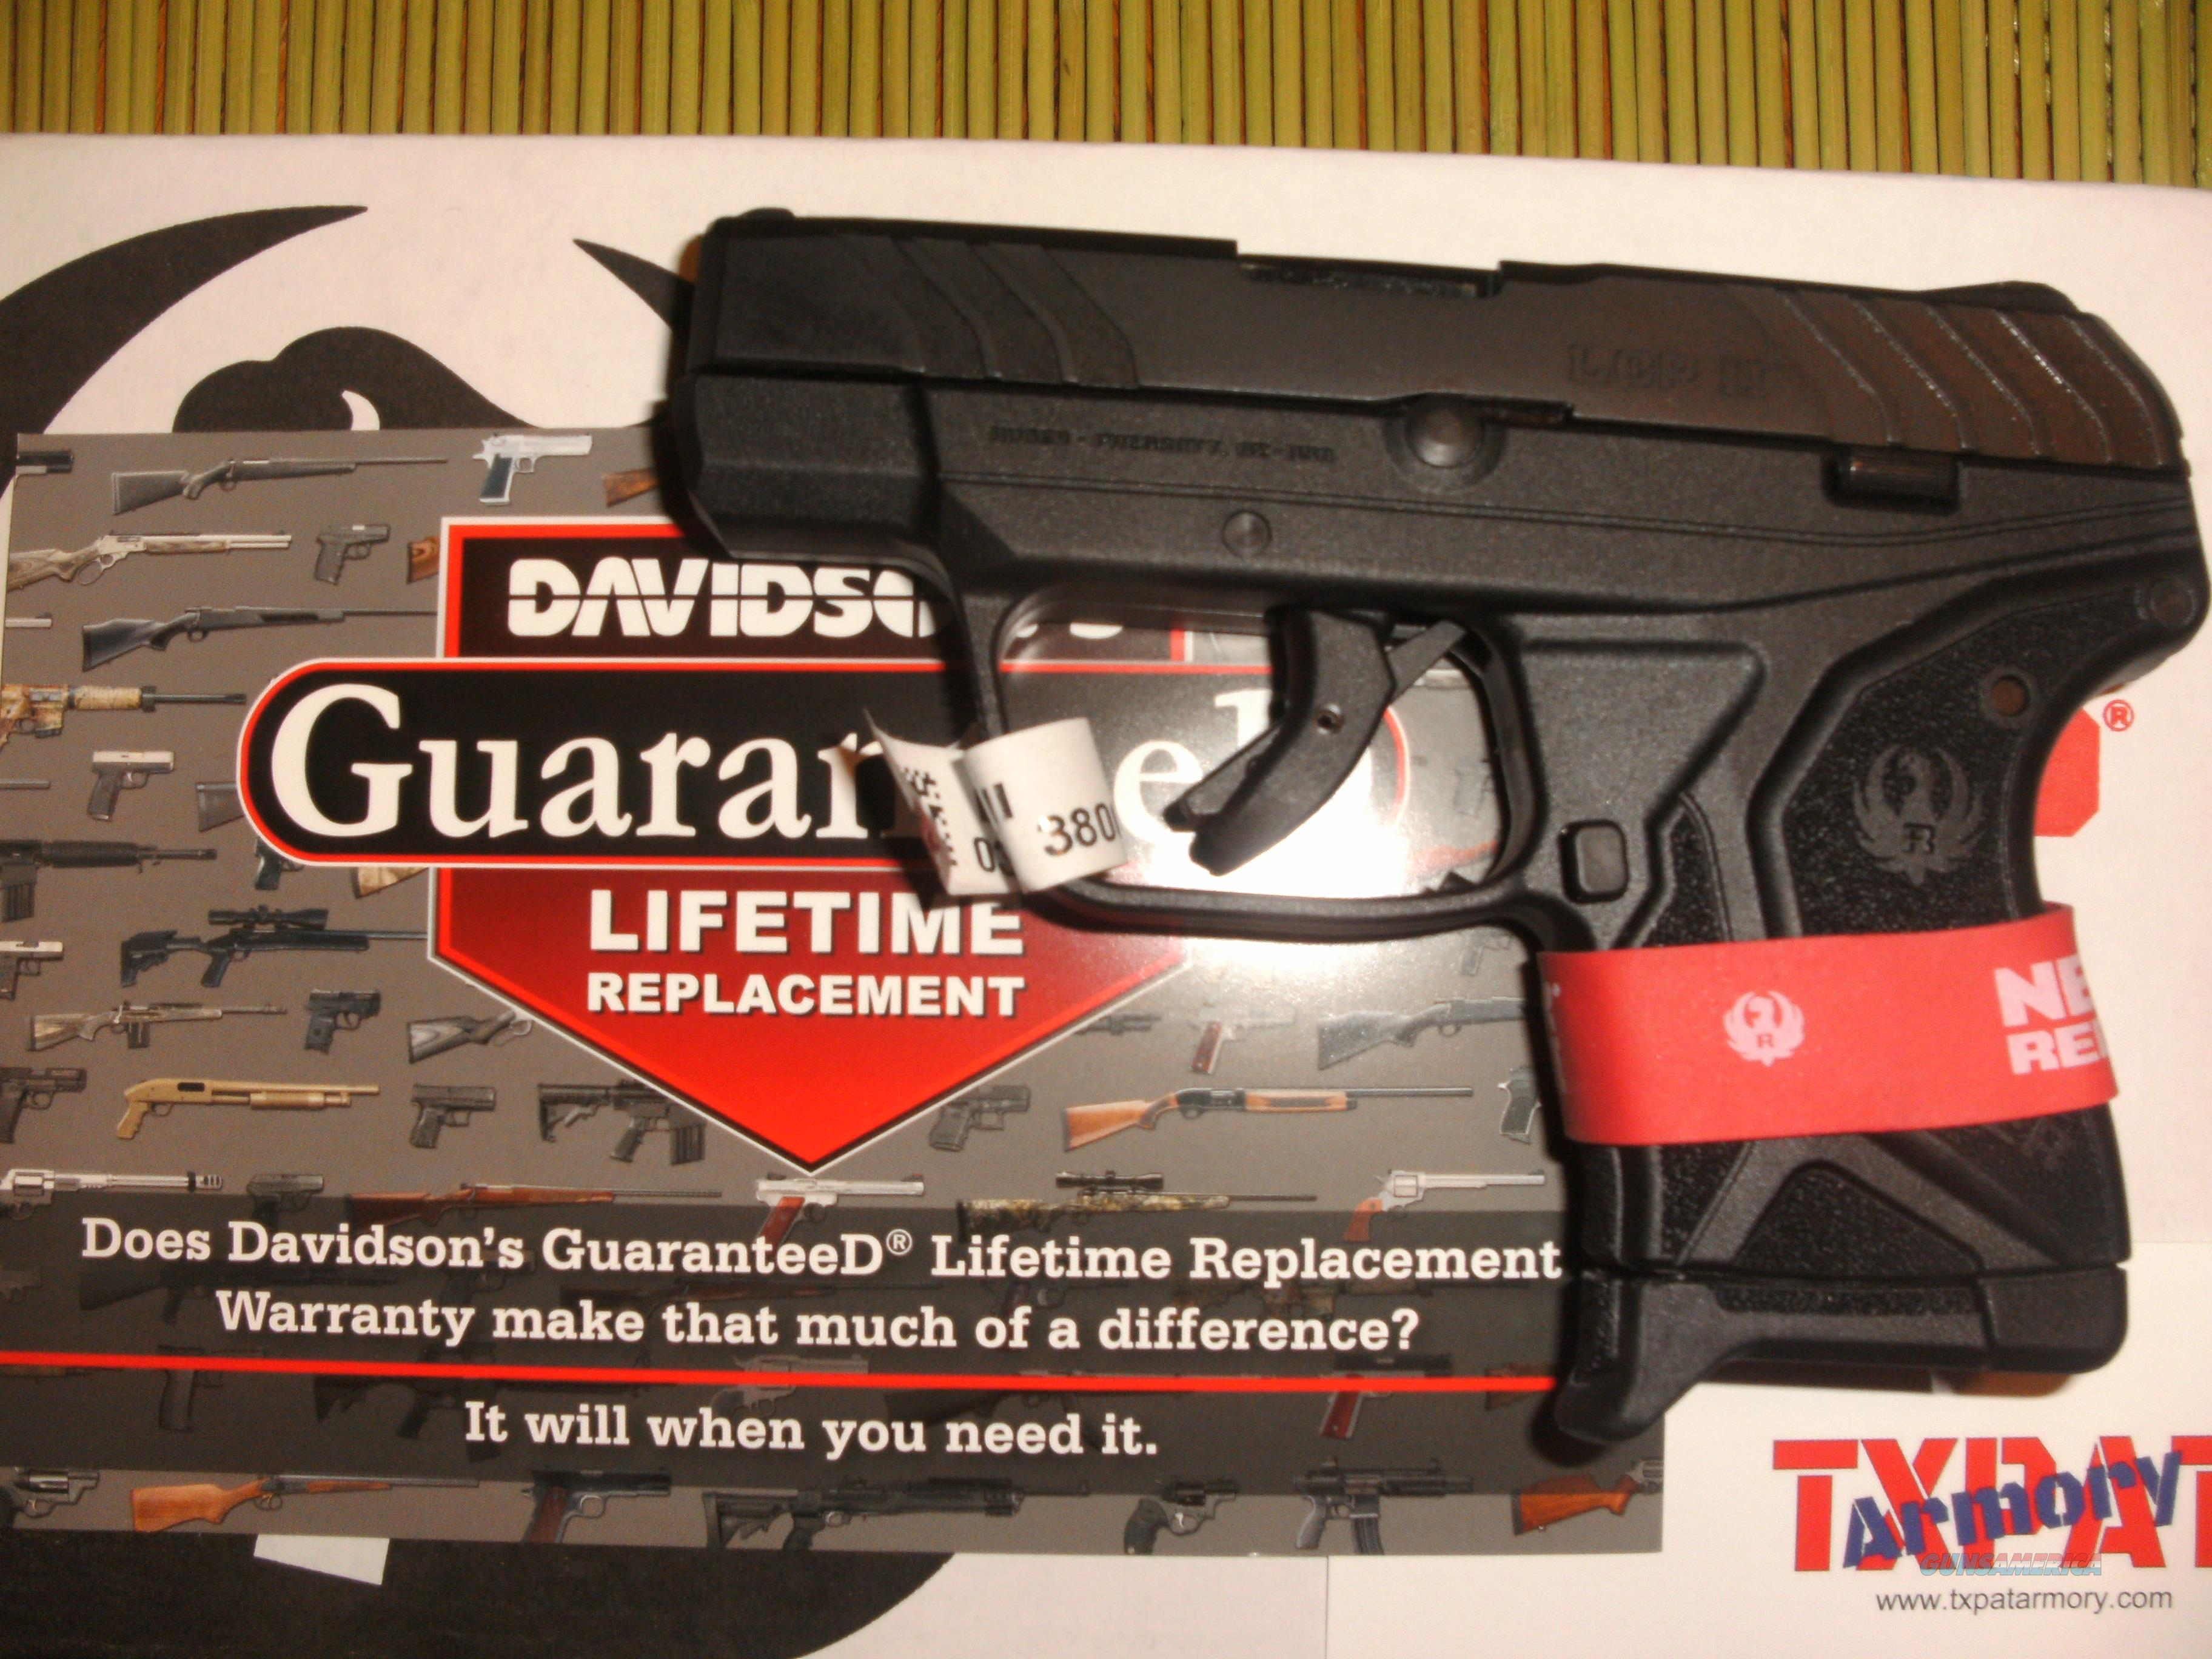 RUGER LCP II -  380 - FREE POCKET HOLSTER - NEW IN BOX - DAVIDSON'S  LIFETIME GUARANTEE - FREE PRIORITY SHIPPING! - TXPAT ARMORY LLC